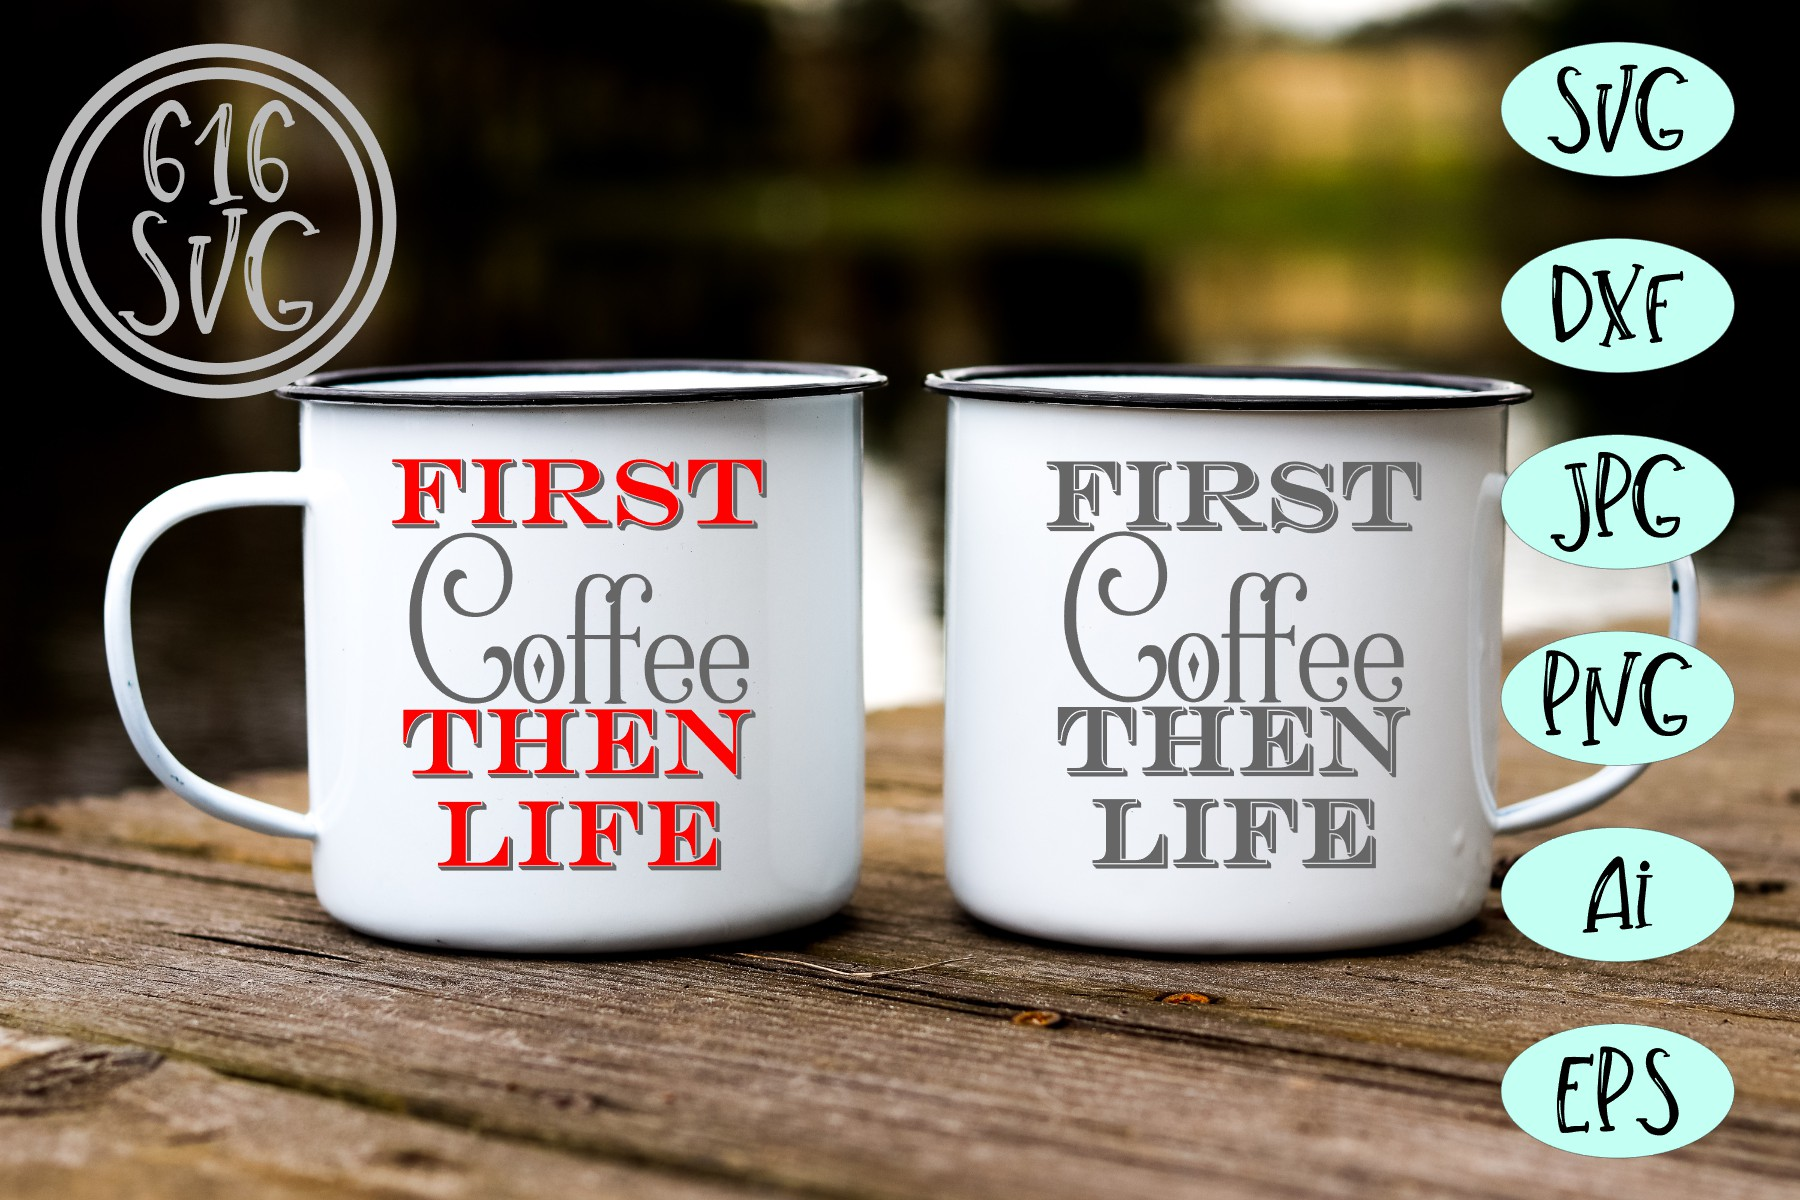 First coffee then life SVG, DXF, Ai, PNG example image 1